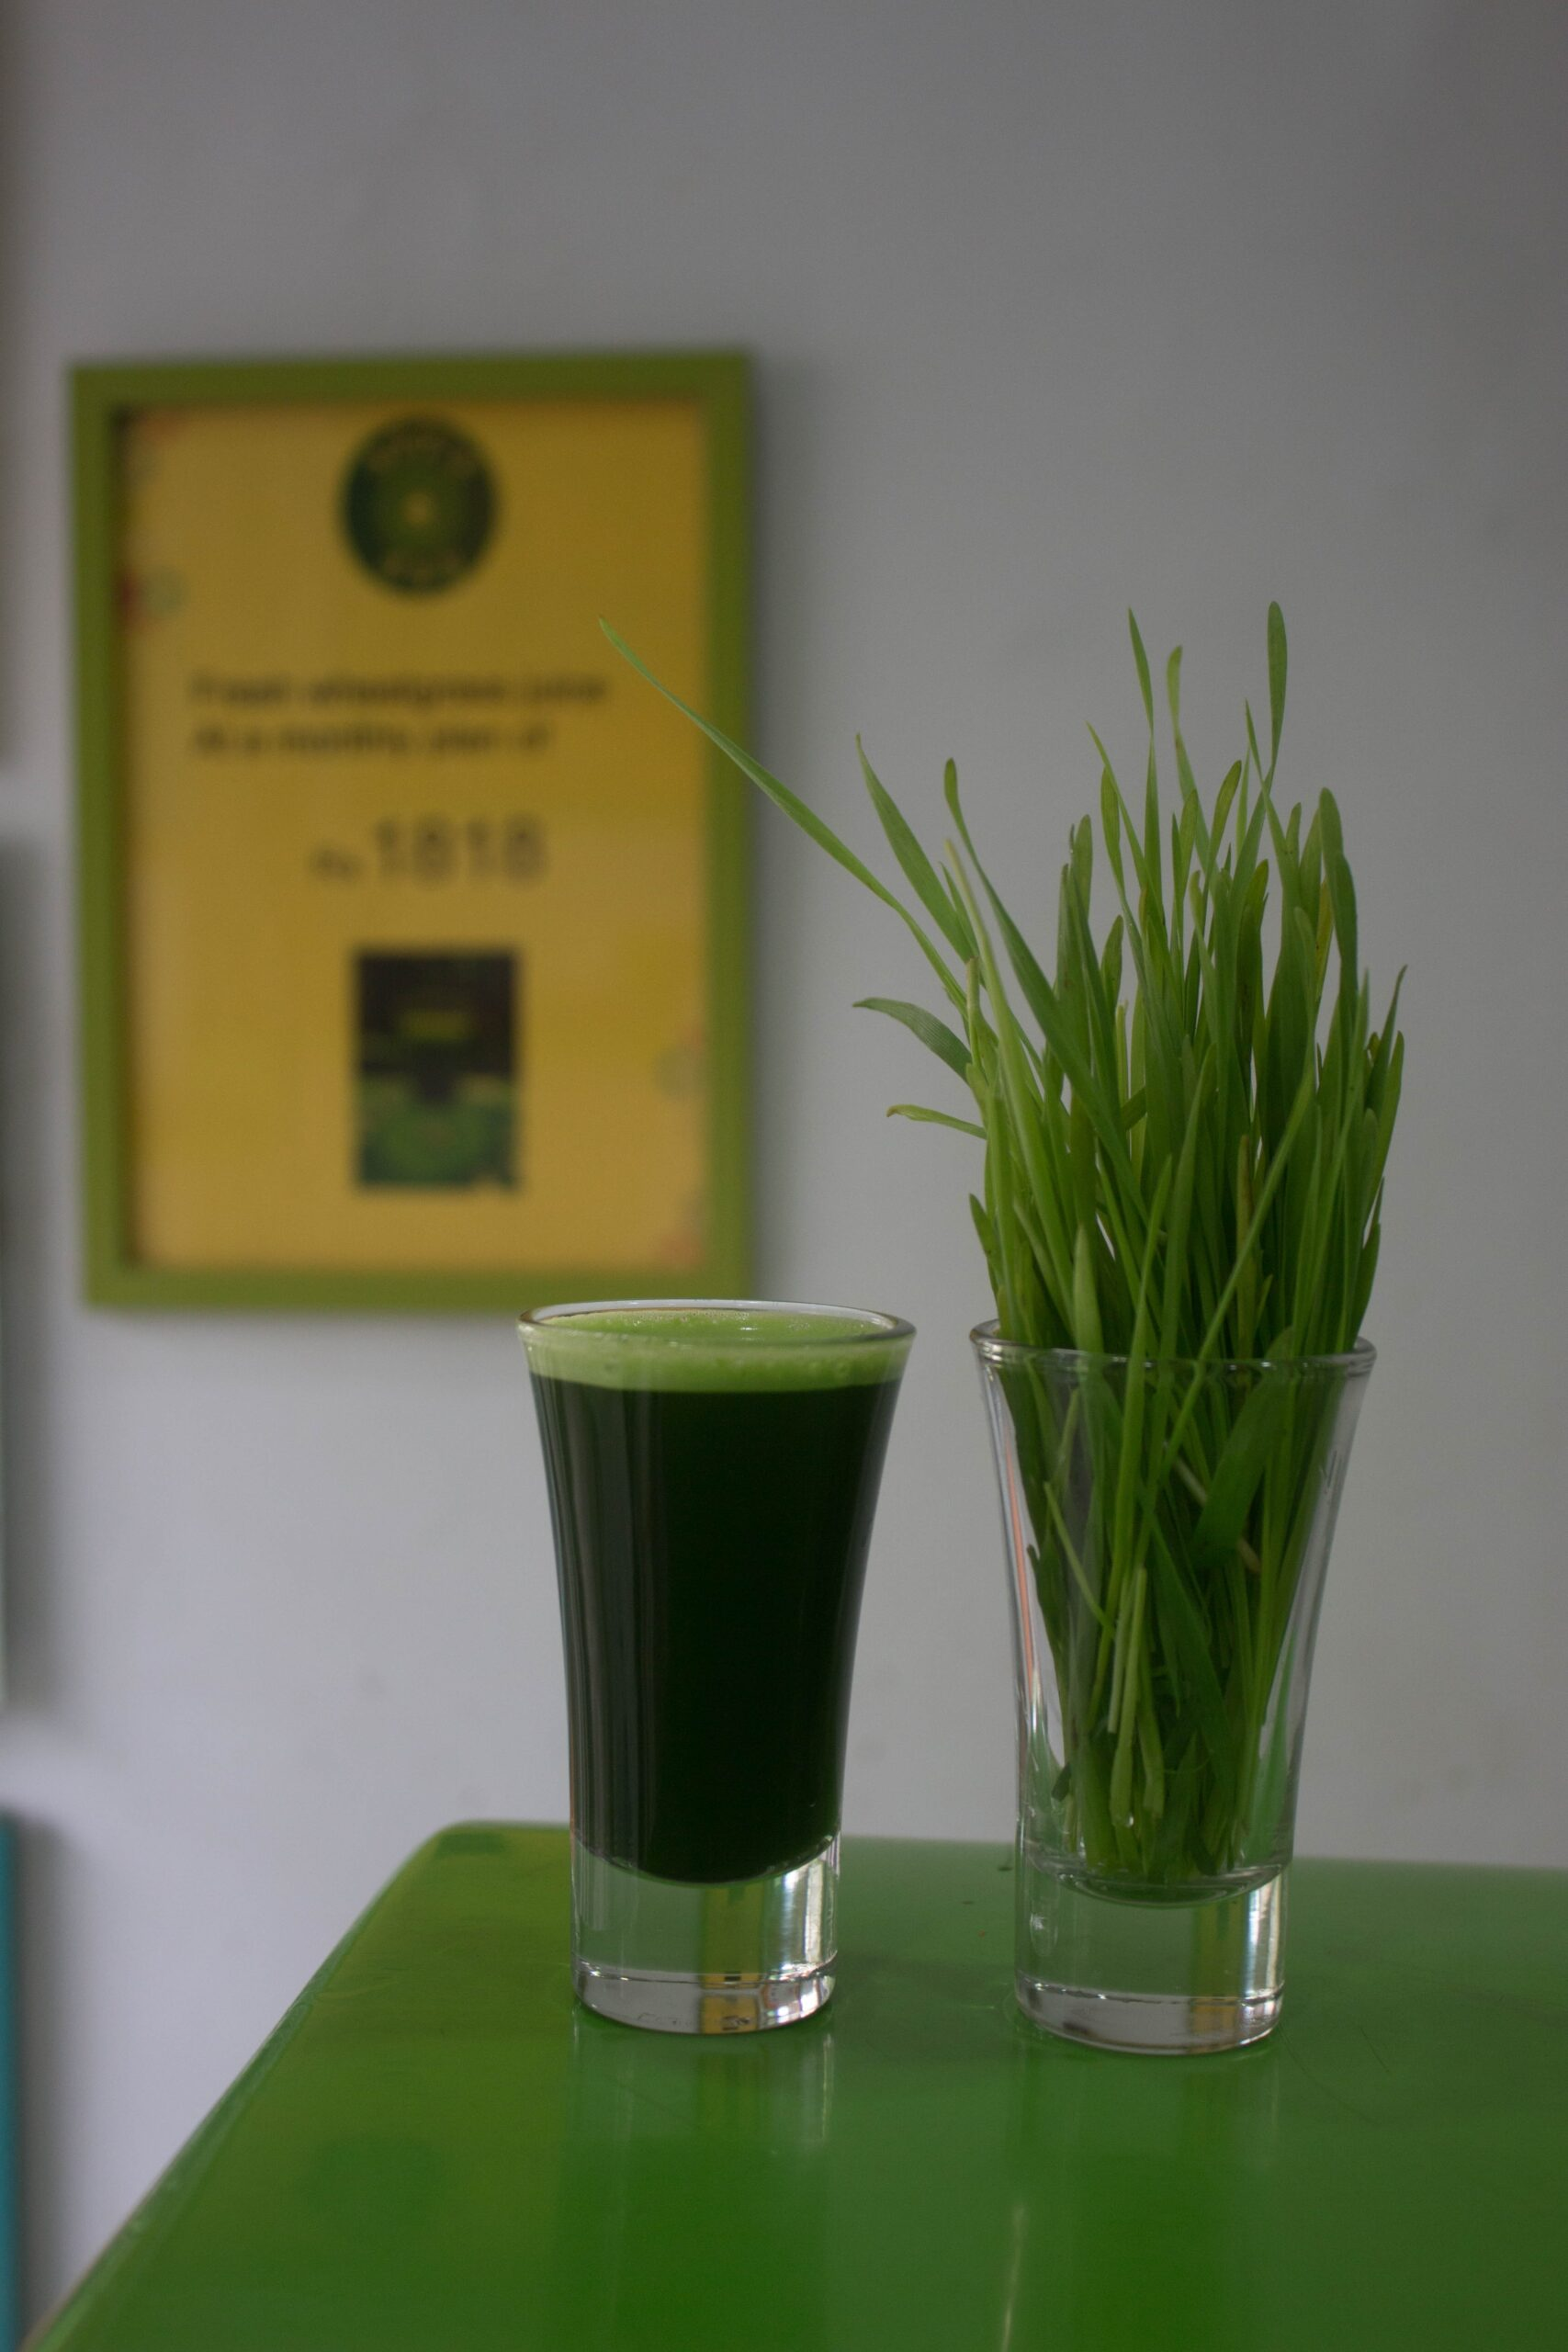 Glass of wheatgrass juice next to a glass of wheatgrass made in a masticating juicer